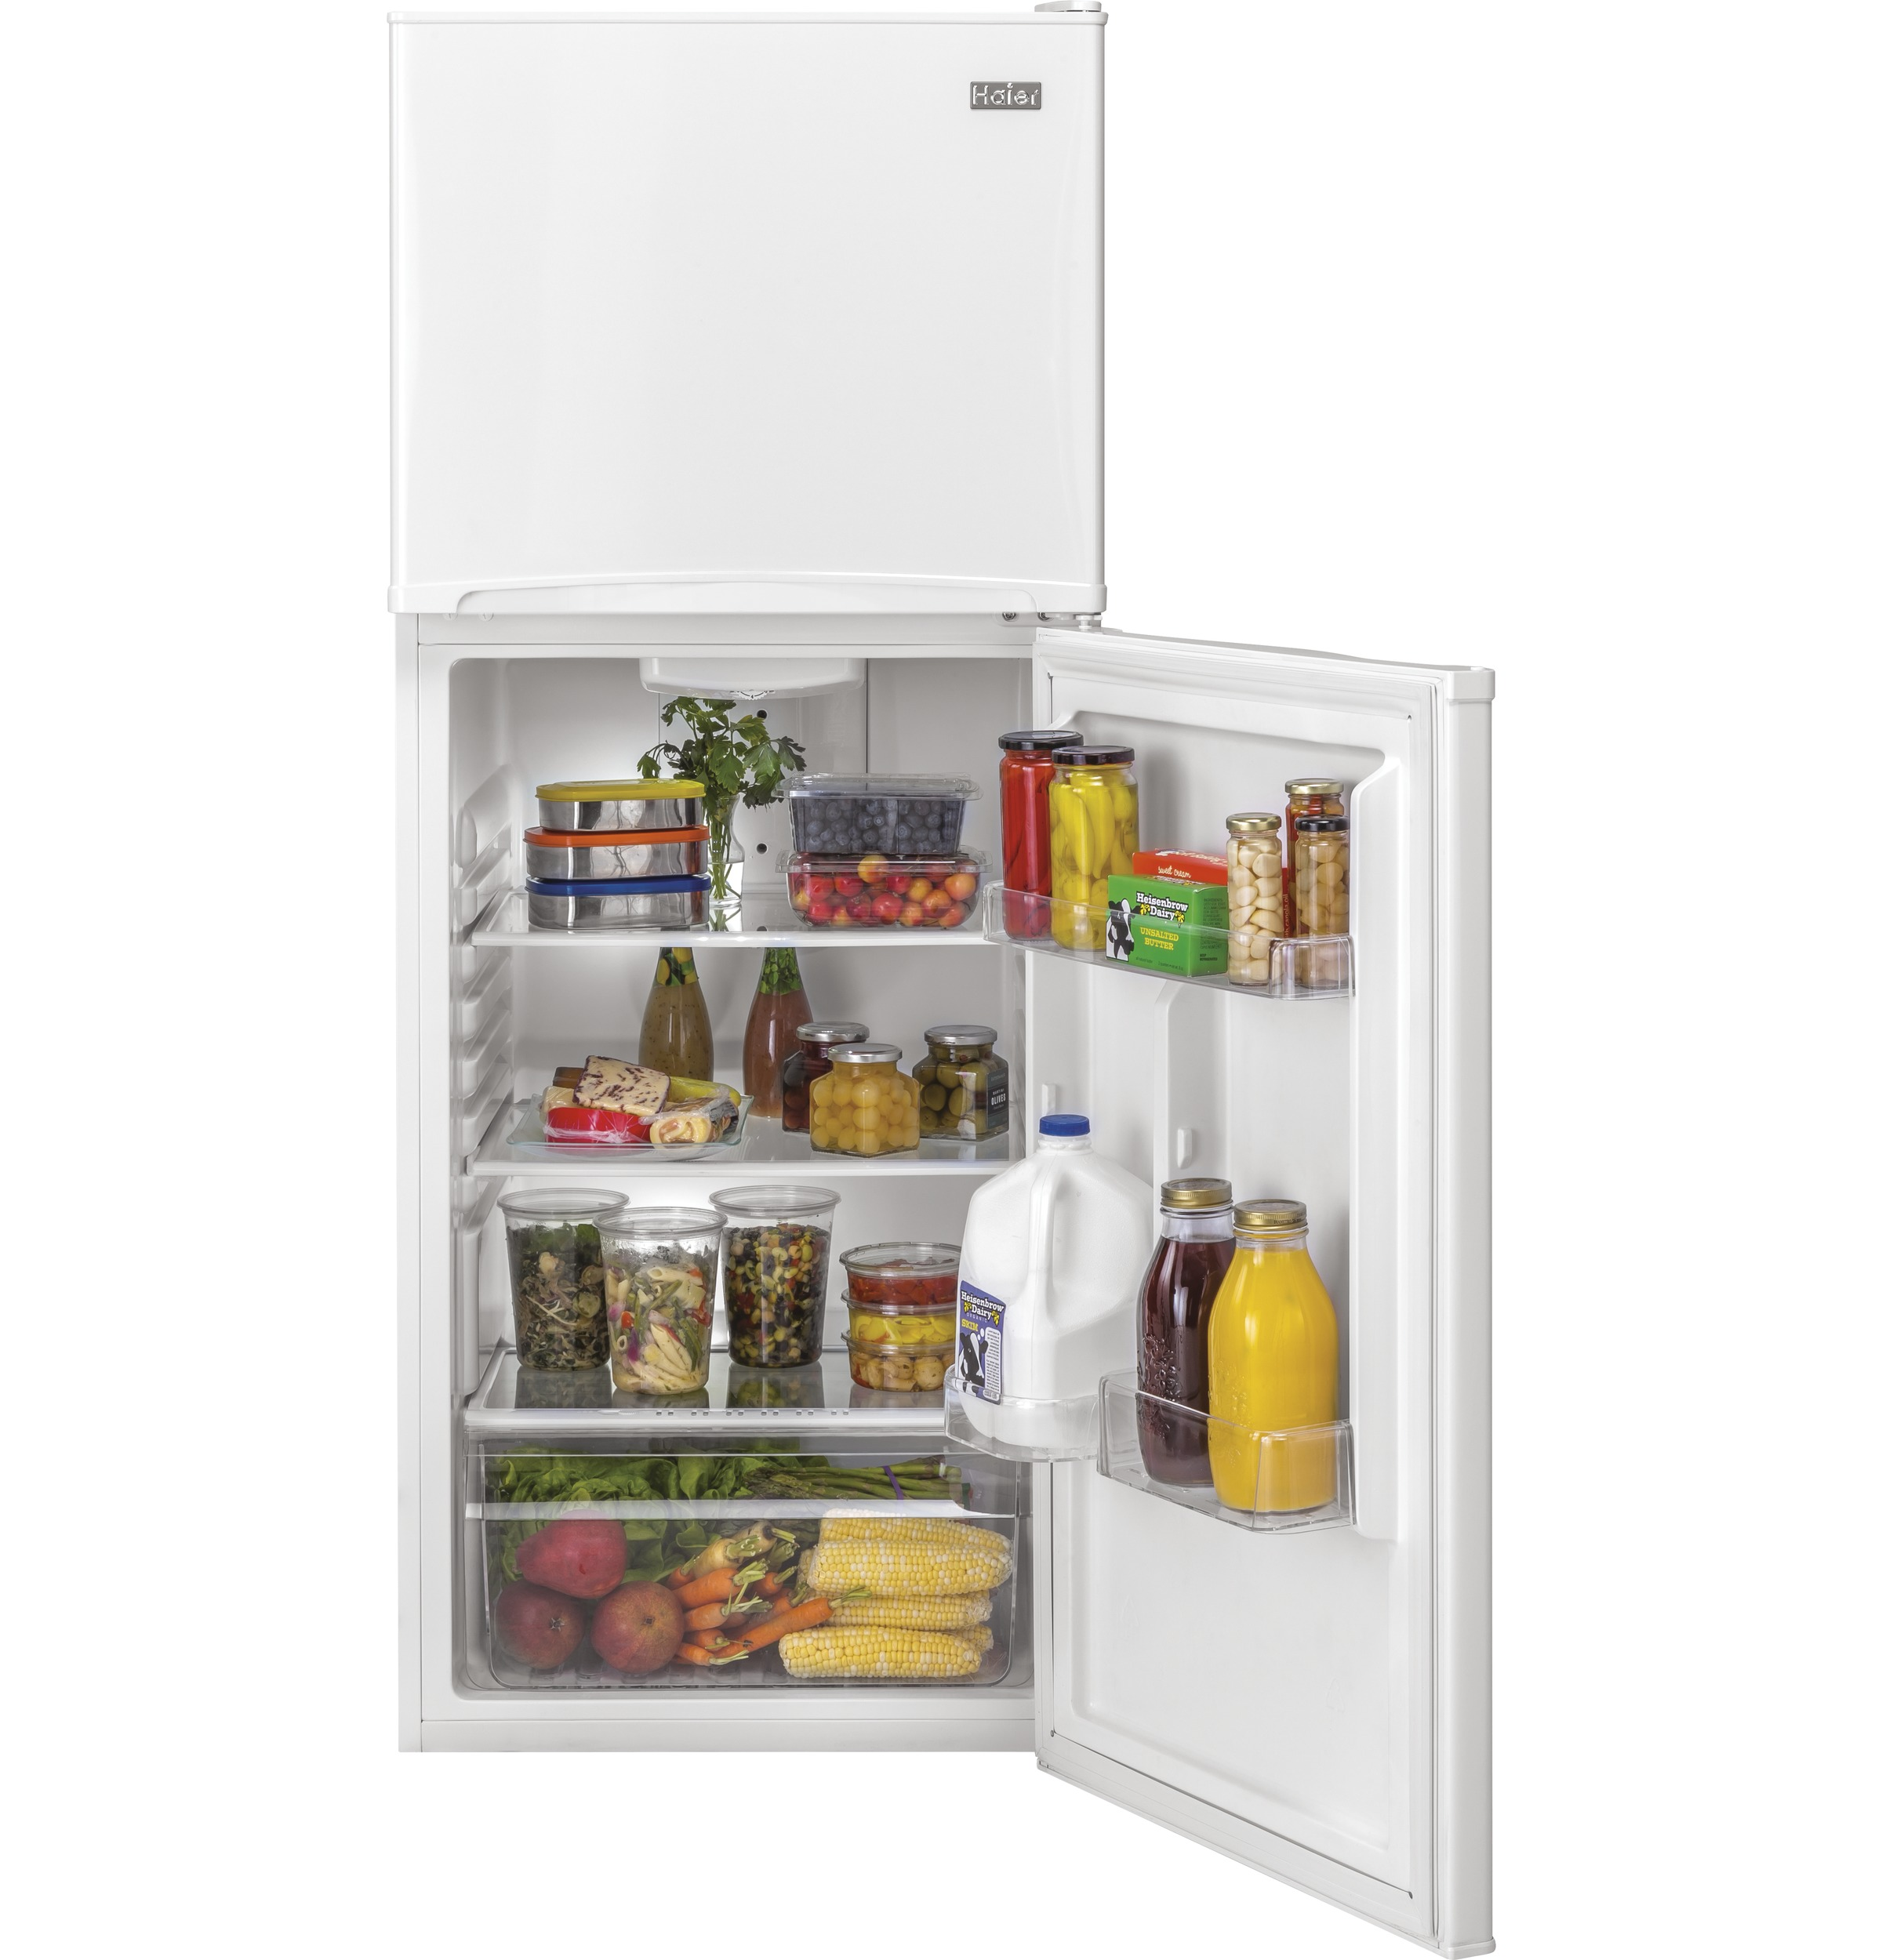 Model: HA10TG21SW | Haier 9.8 Cu. Ft. Top Freezer Refrigerator